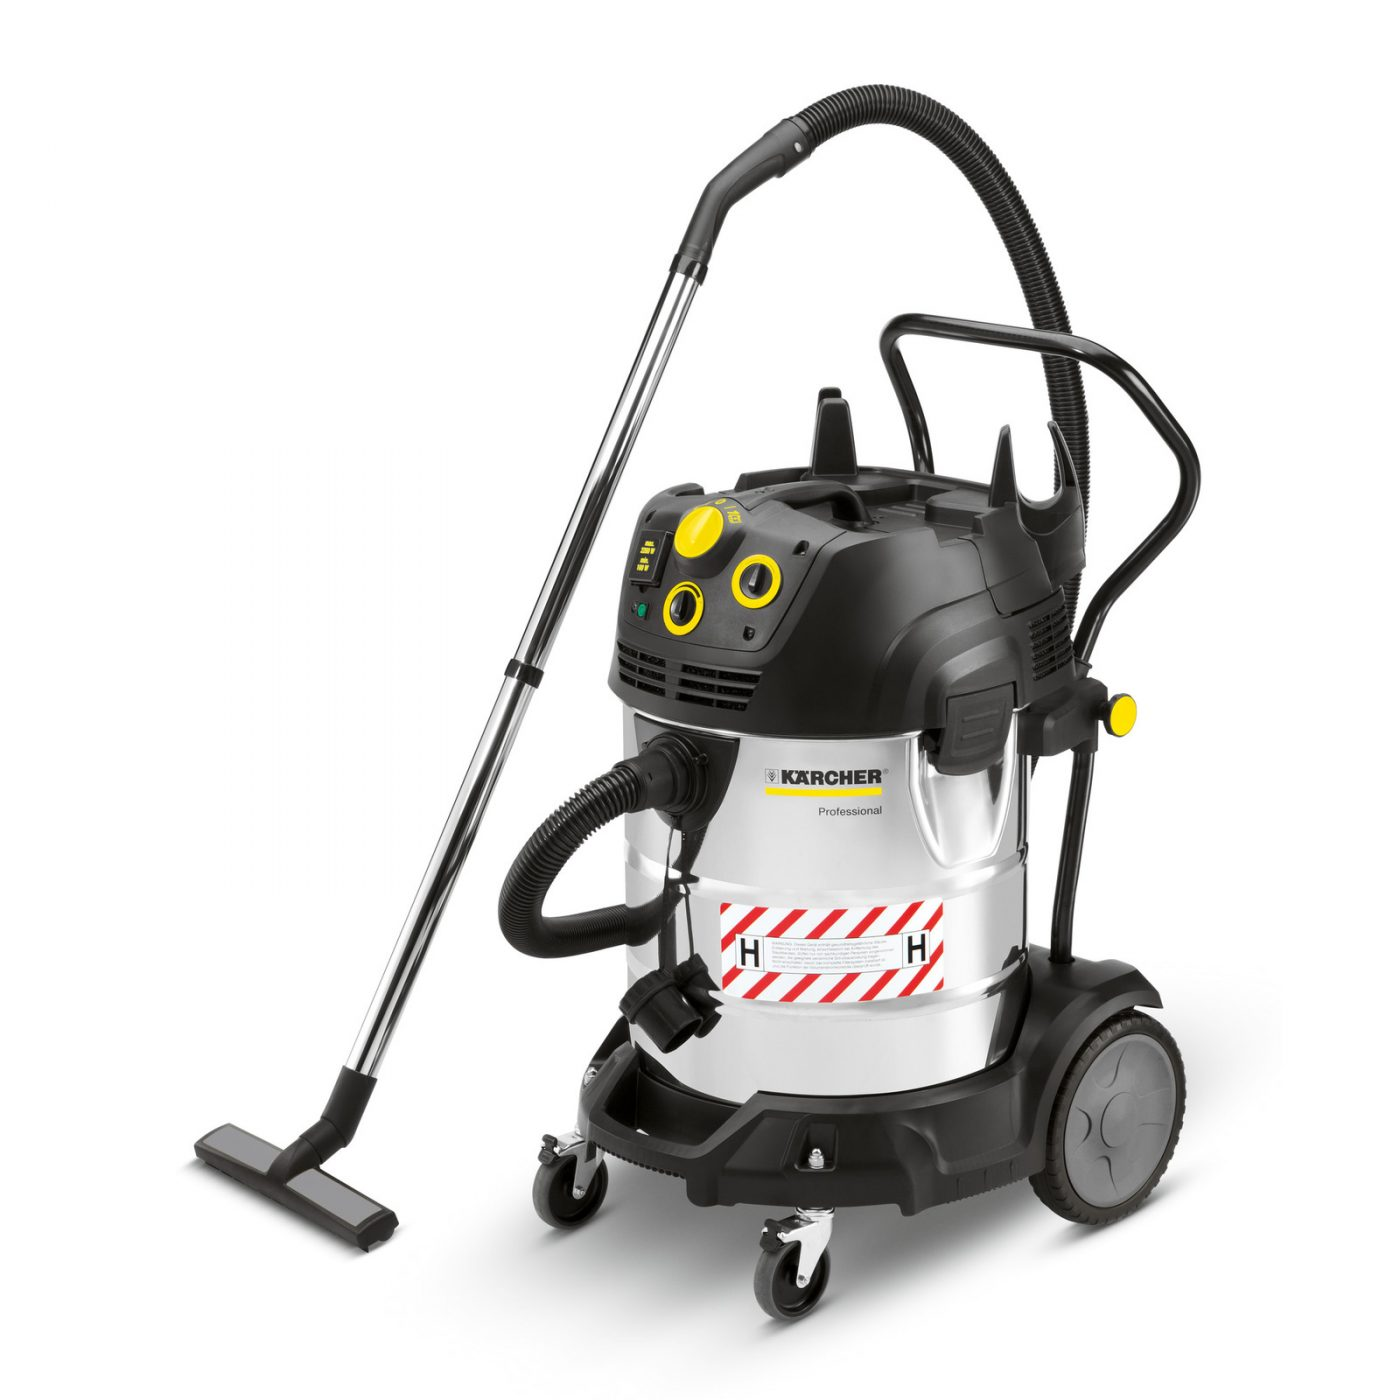 Karcher_1.667-294.0_NT75-1 Tact Vacuum Cleaner